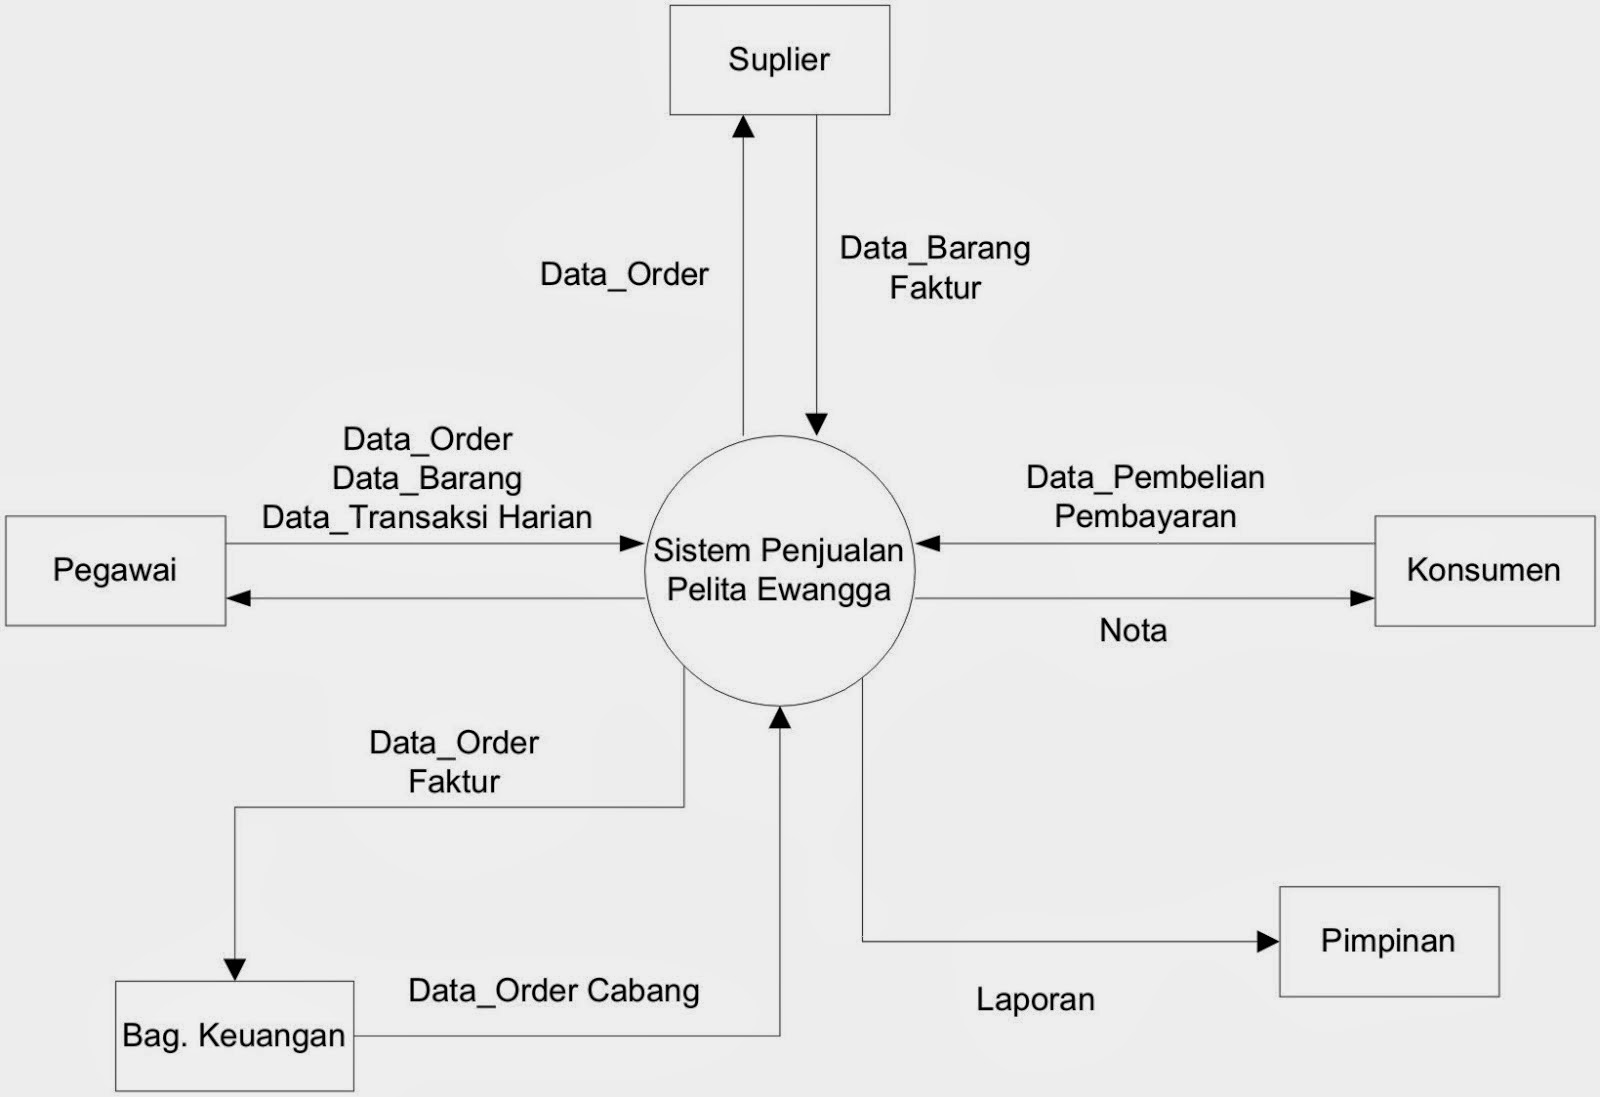 Contoh dfd diagram konteks search for wiring diagrams vina blog rangkuman data flow diagram dfd rh vinabastian blogspot com contoh kasus diagram konteks dan dfd contoh diagram konteks dfd level 0 dan level 1 ccuart Image collections